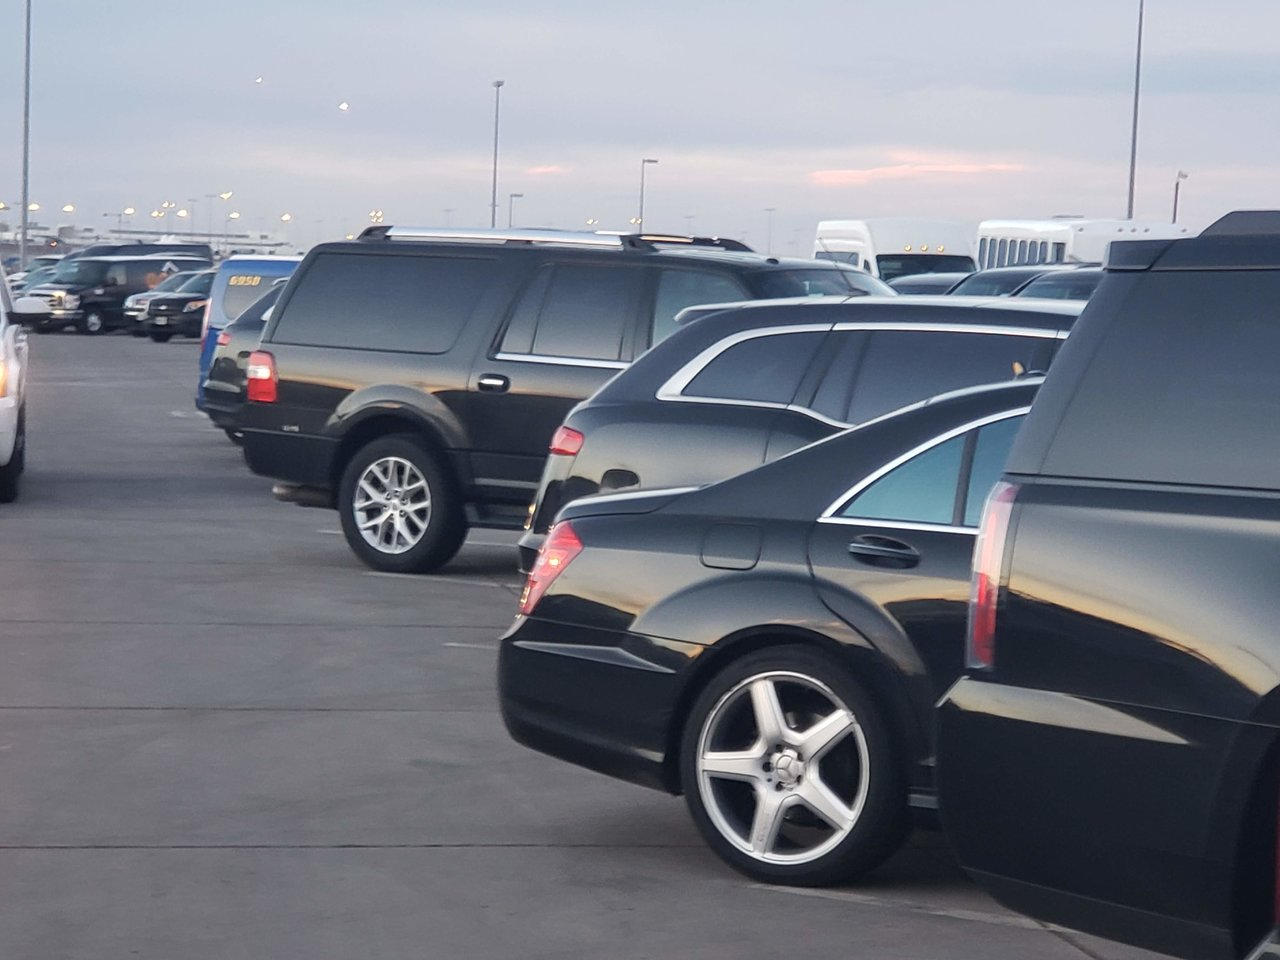 Private fleet of cars for ride to DIA